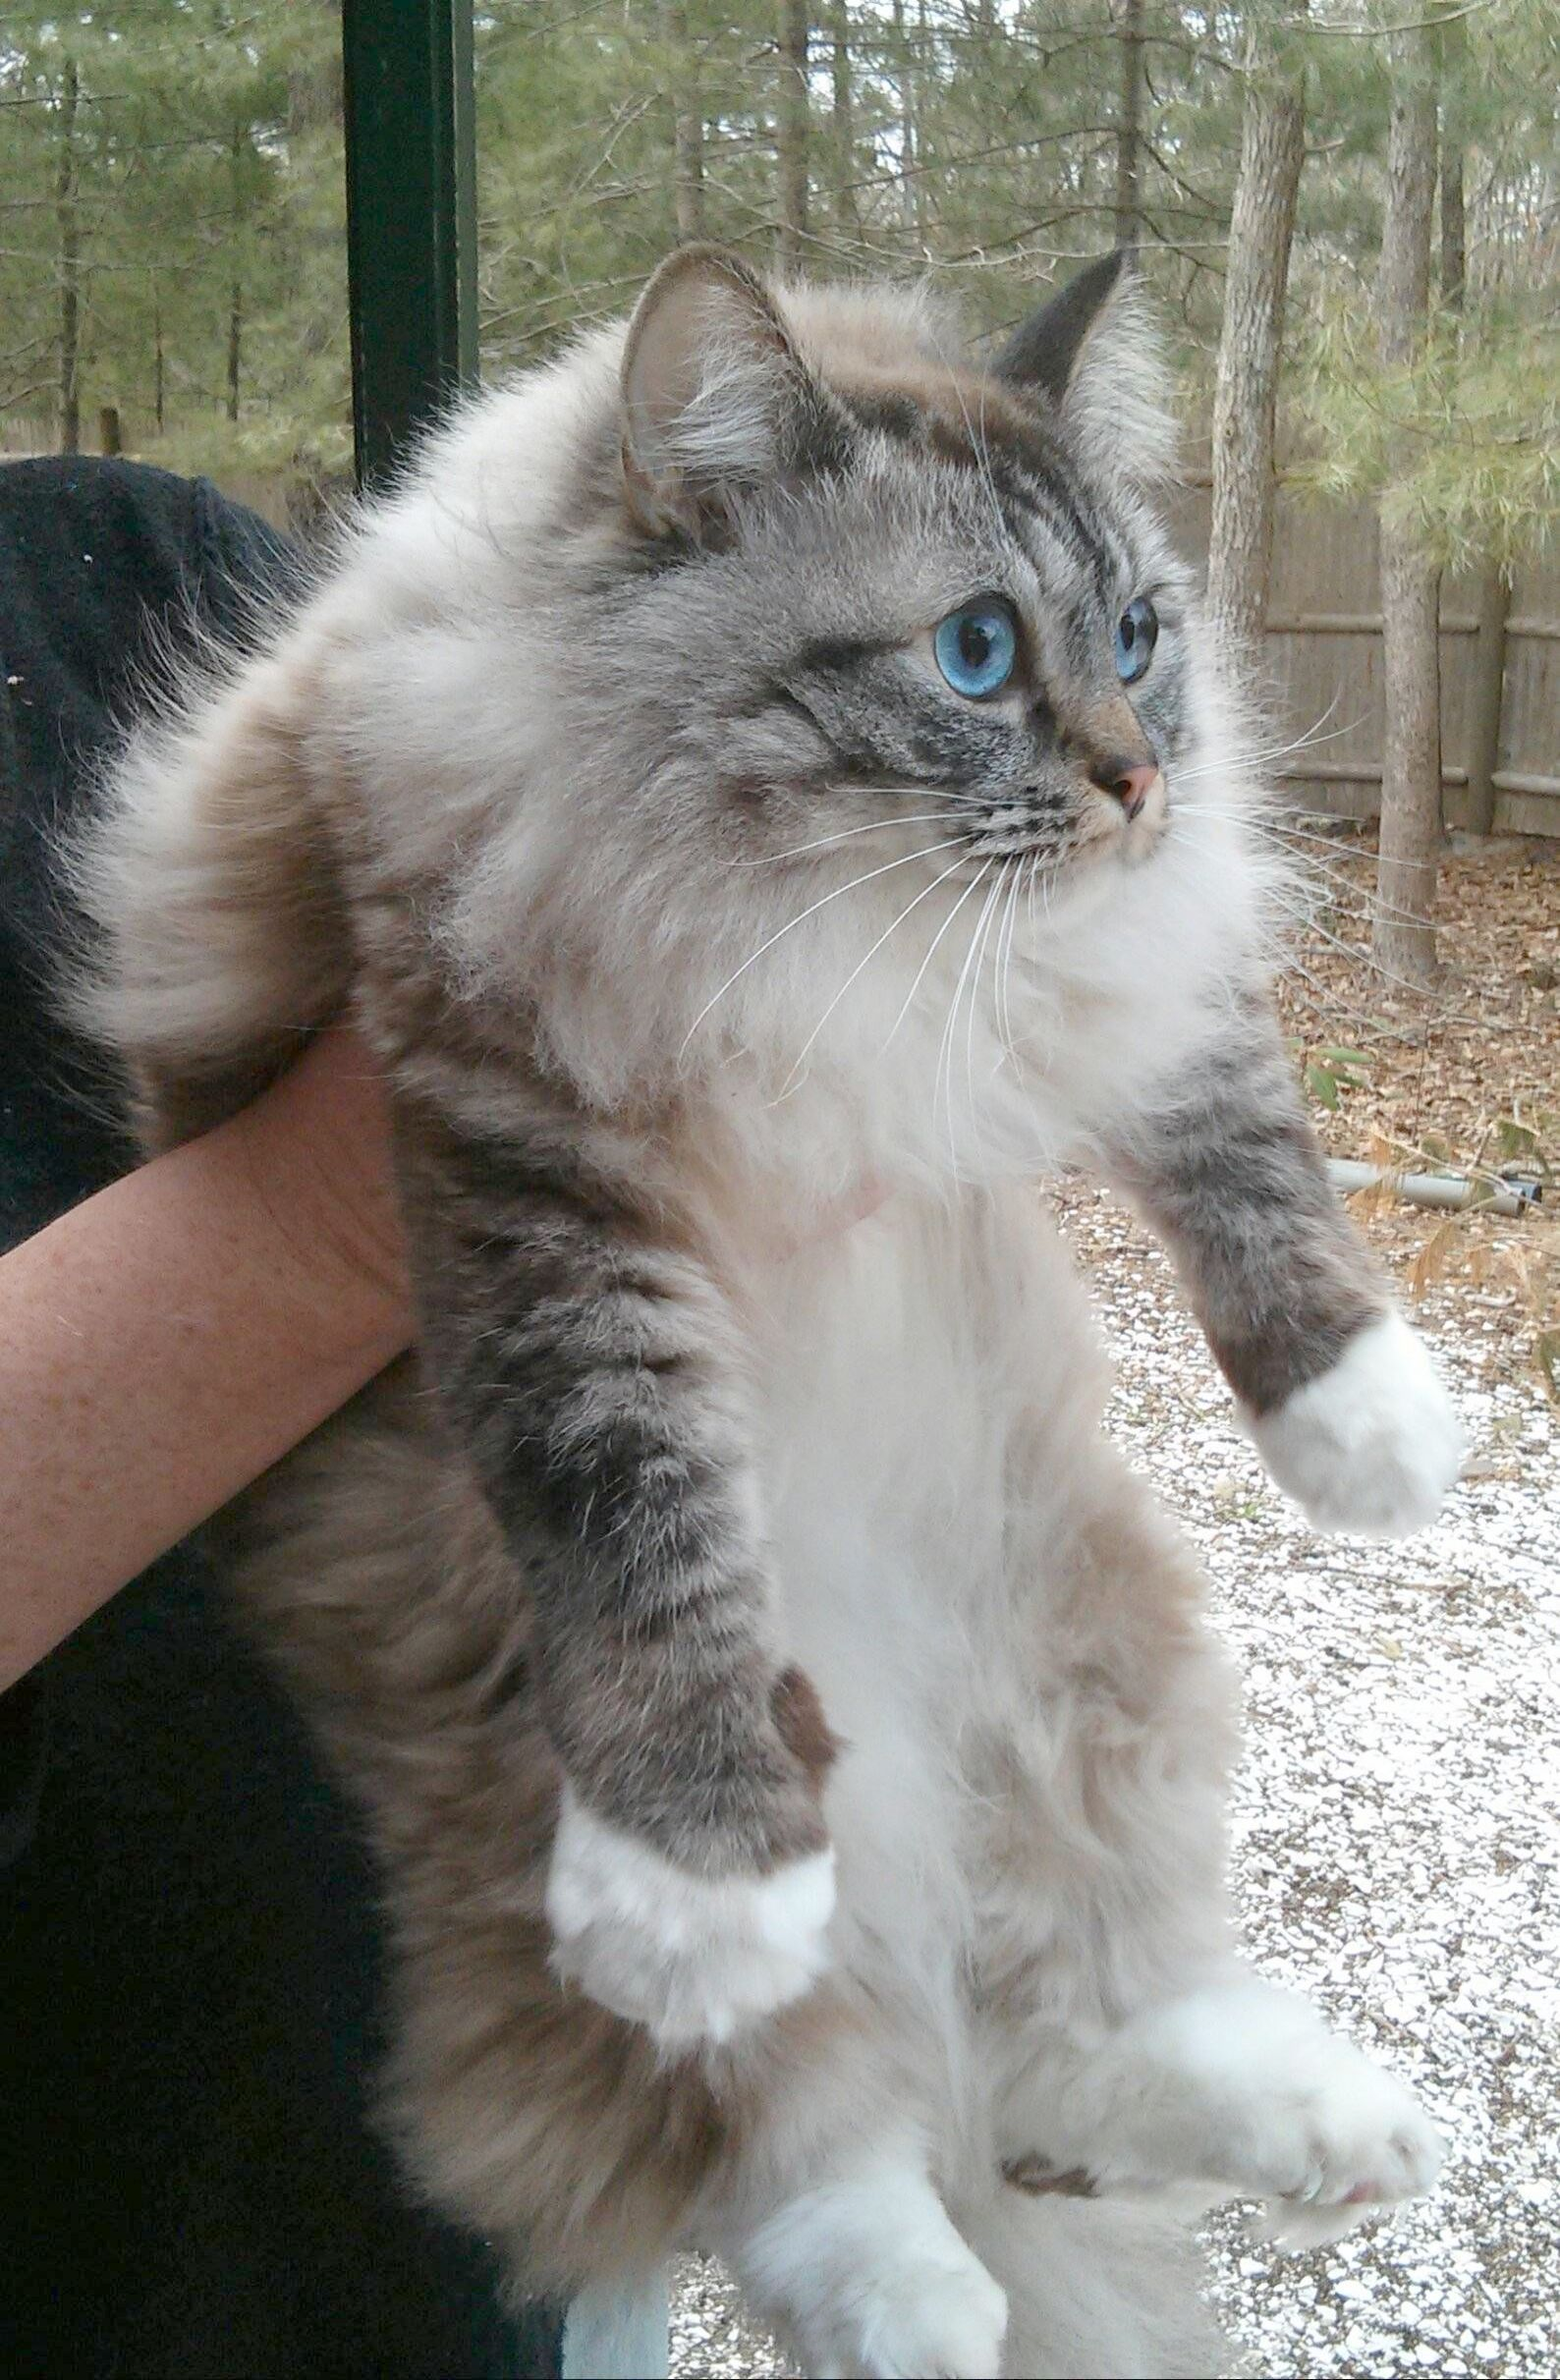 Breathtaking Beautiful Cats For Sale Near Me visit